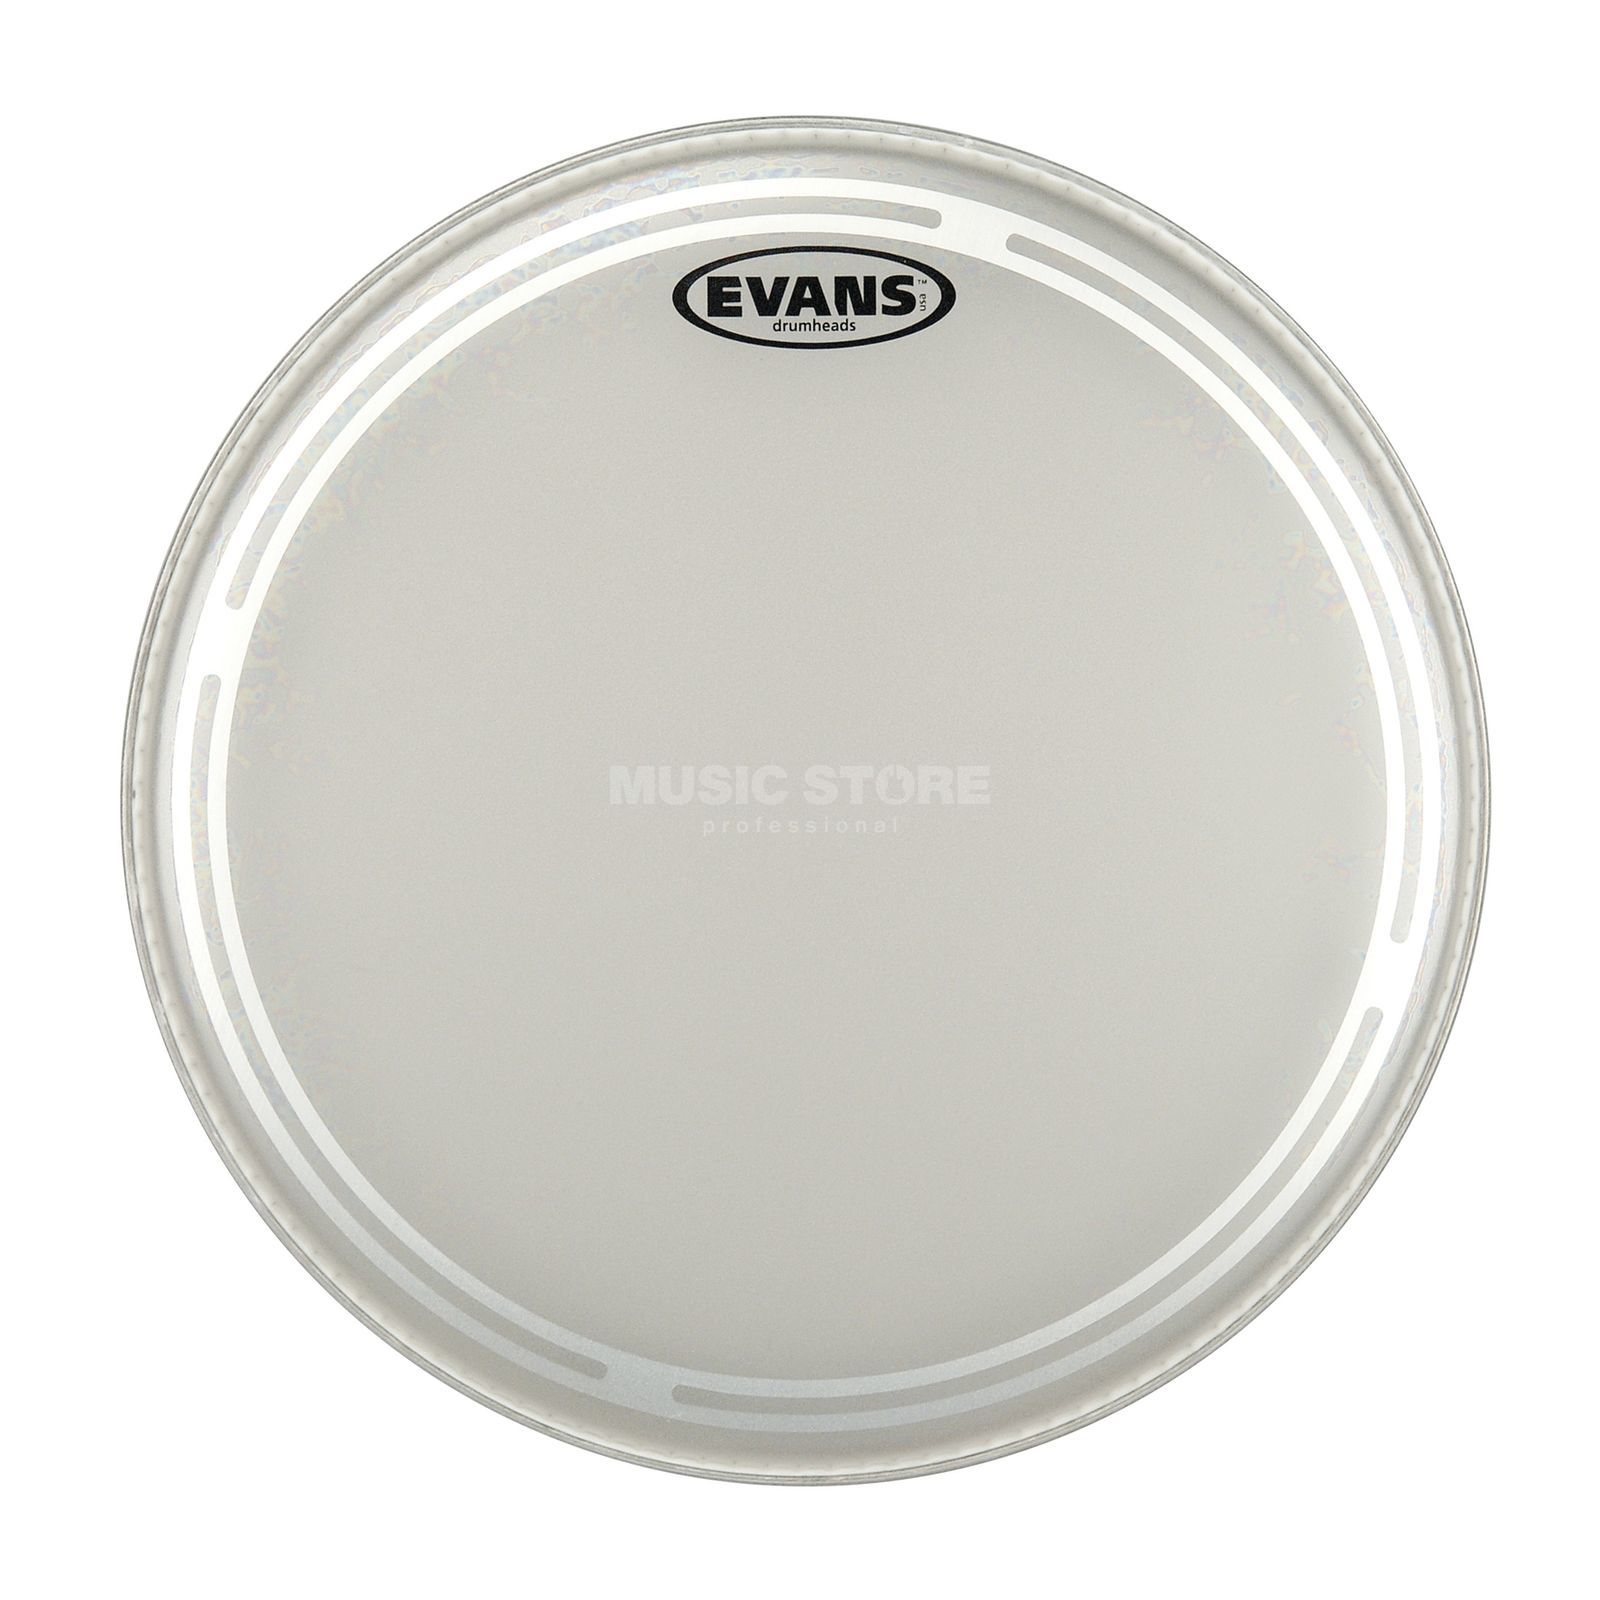 "Evans EC1, 18"", coated, Tom Batter, B-Stock Product Image"